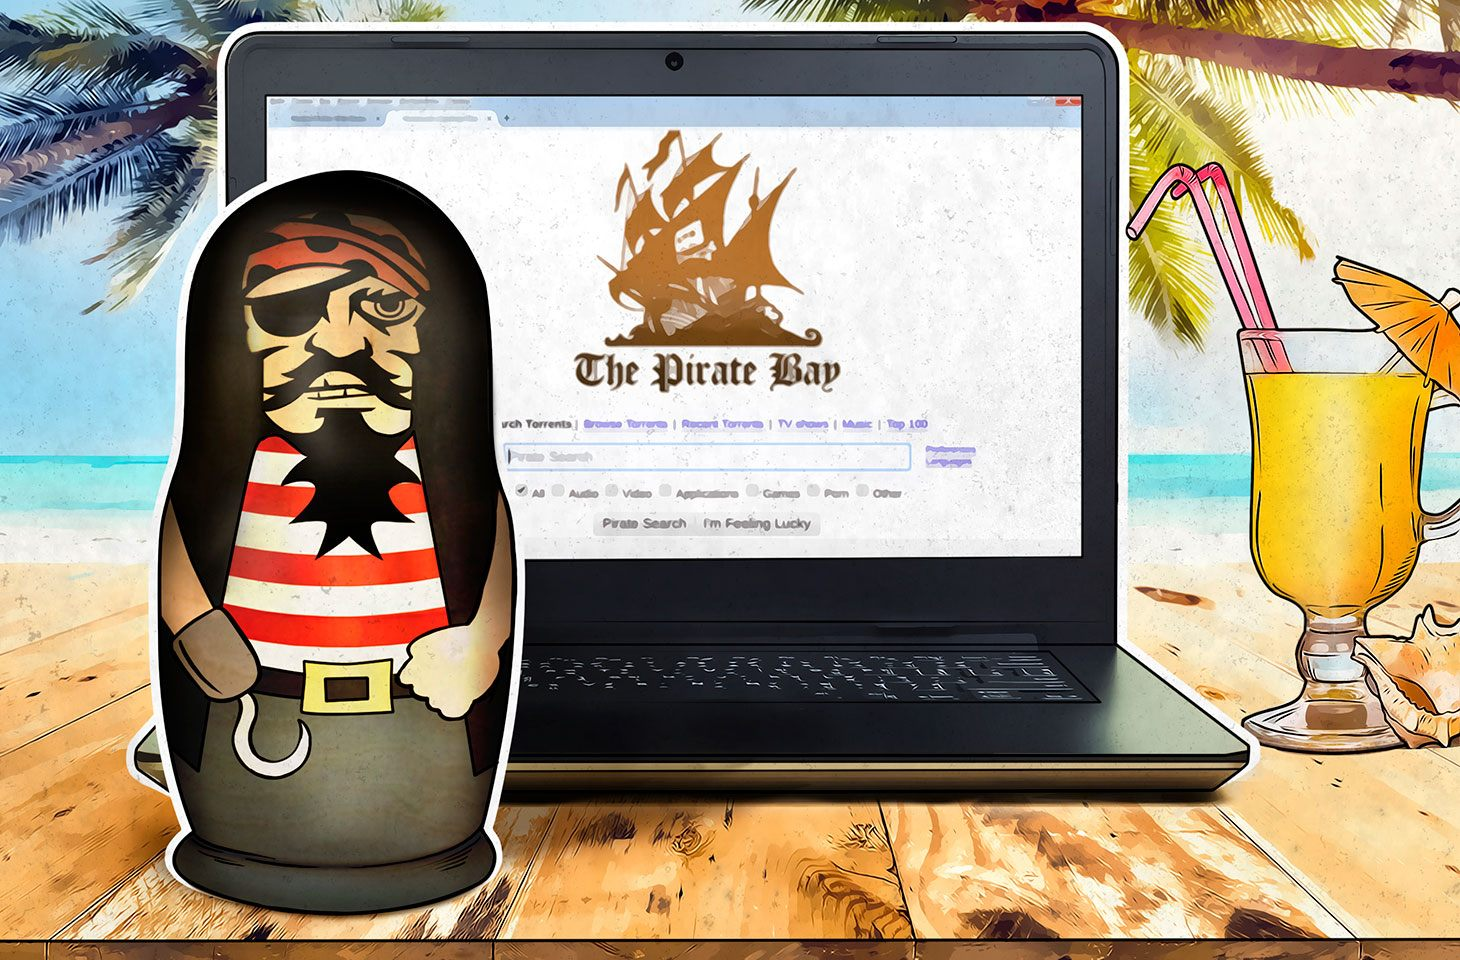 Pirate Matryoshka: The dangers of downloading software from